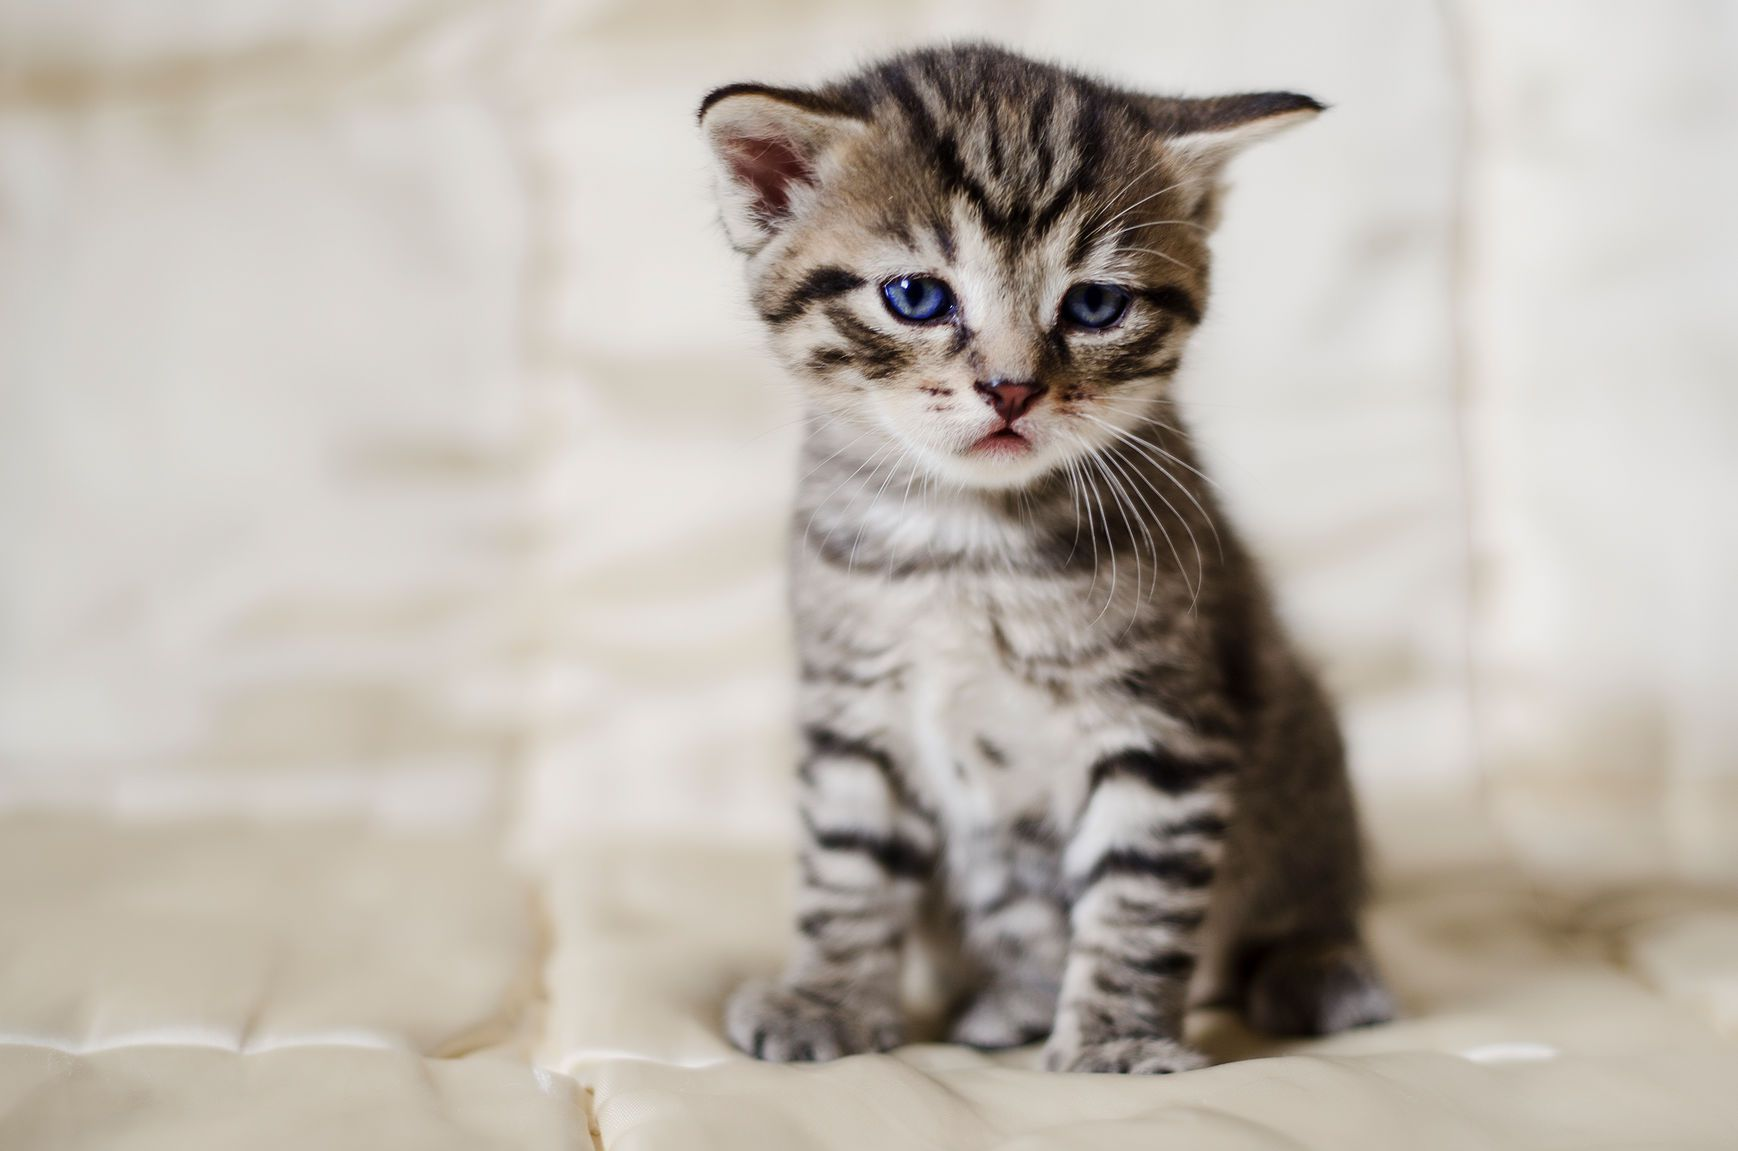 How Can You Tell If Your Cat Is Sick Learn About The Signs Of Illness In Cats And Find Out What To Do About Them Cats Animals Cat Spray